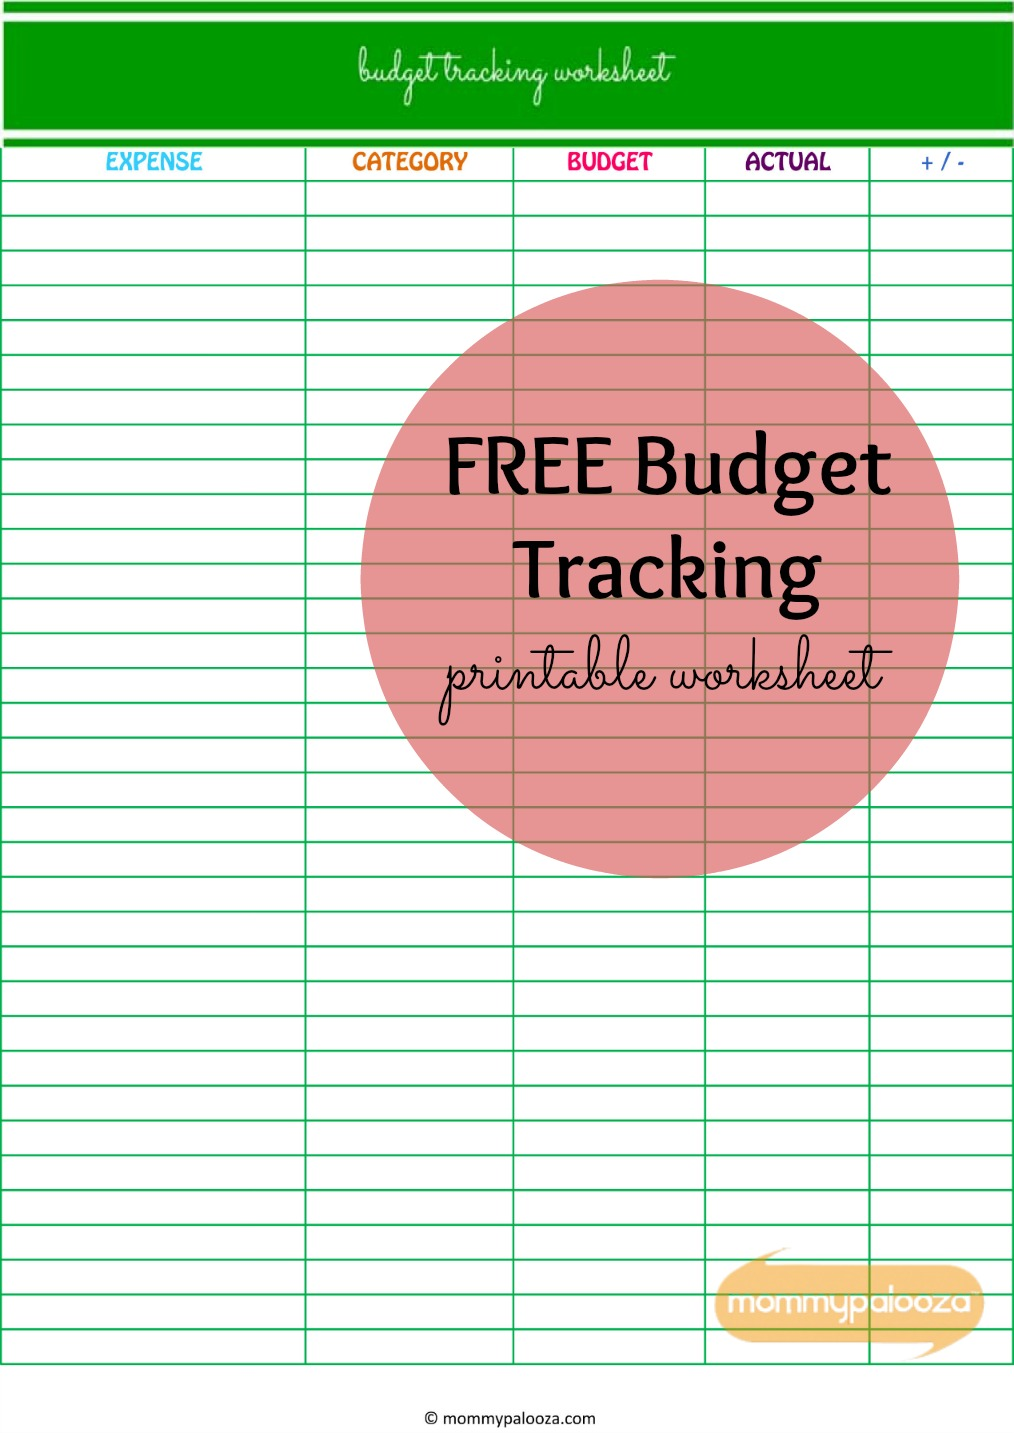 Worksheets Get Out Of Debt Budget Worksheet how payoff can help you get out of debt and free printable budget tracking worksheet mommypalooza